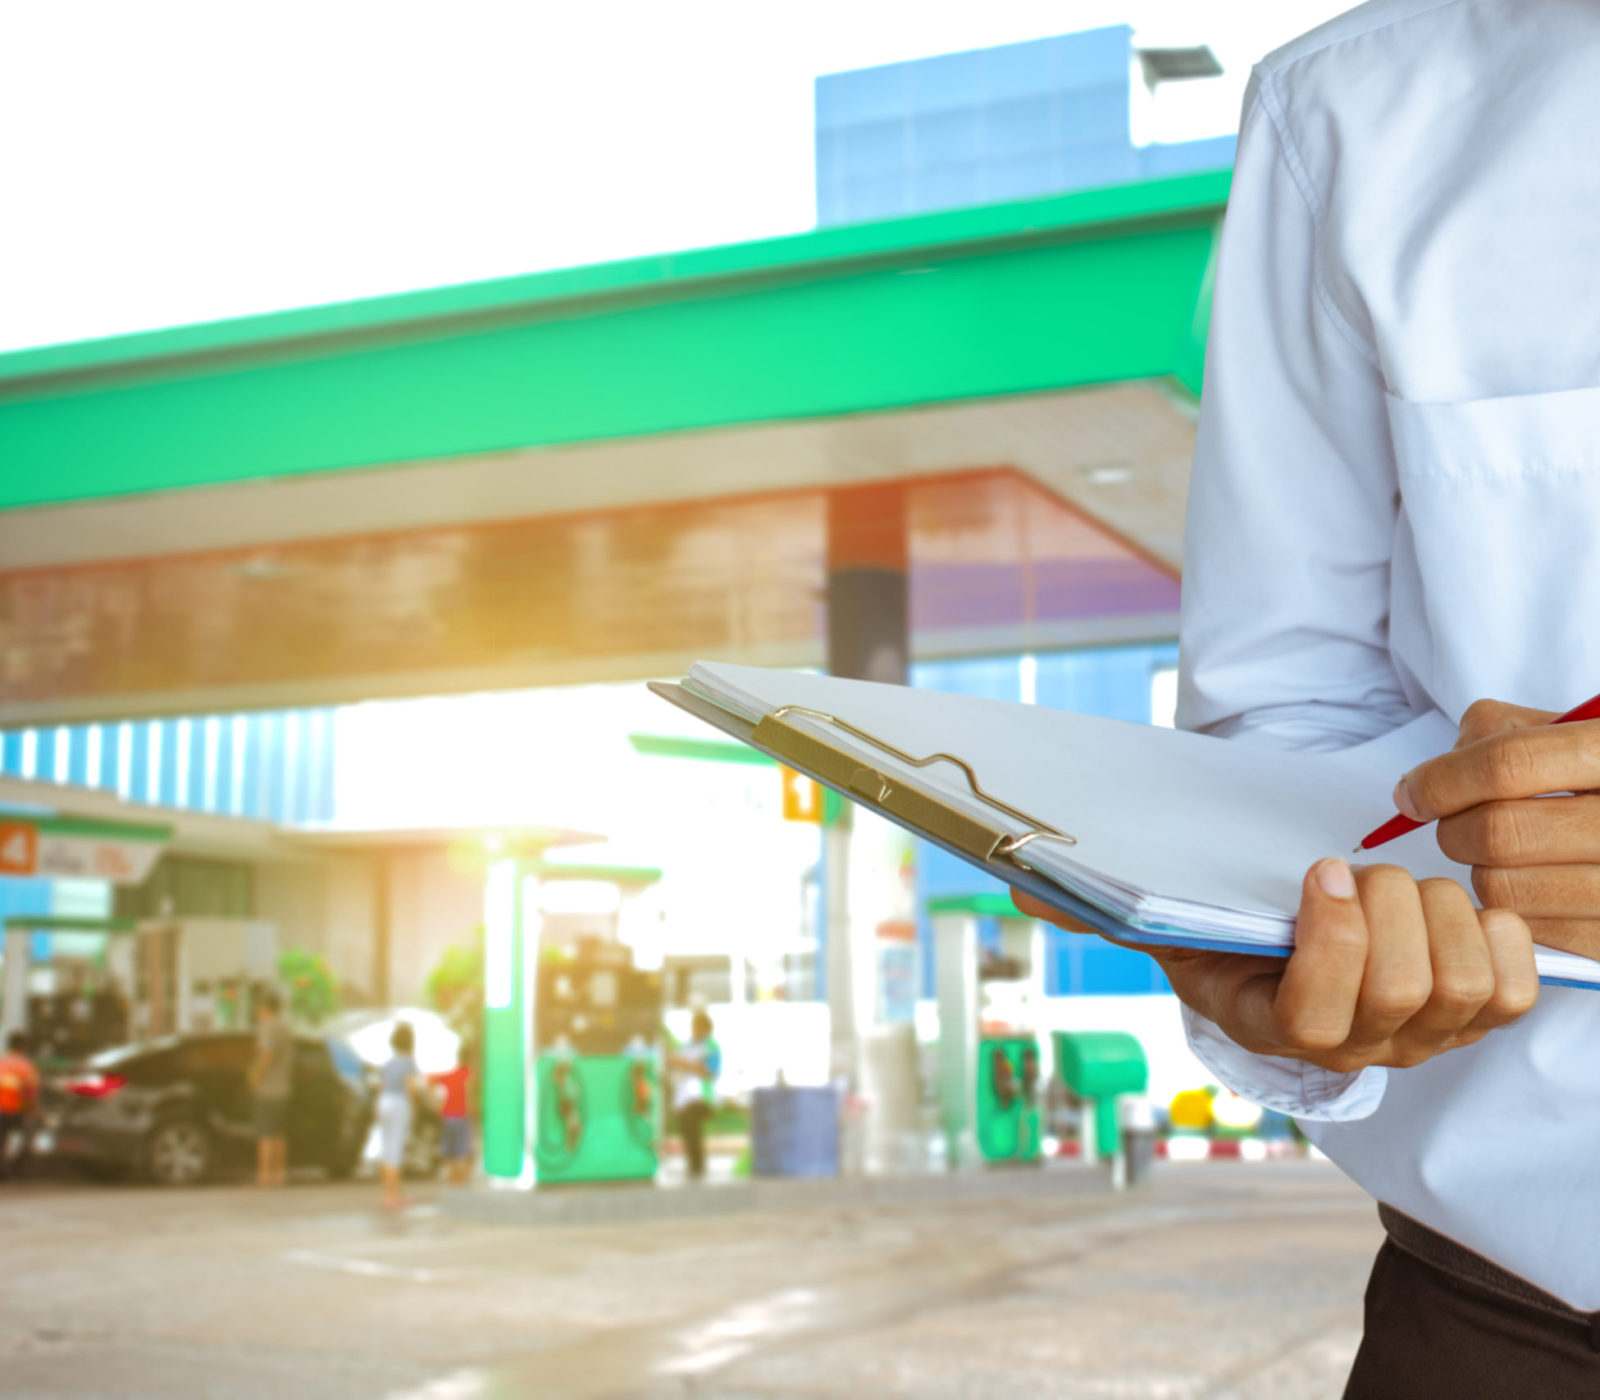 Man staff oil or gas station writing on notrpad using energy for car or transportation, 